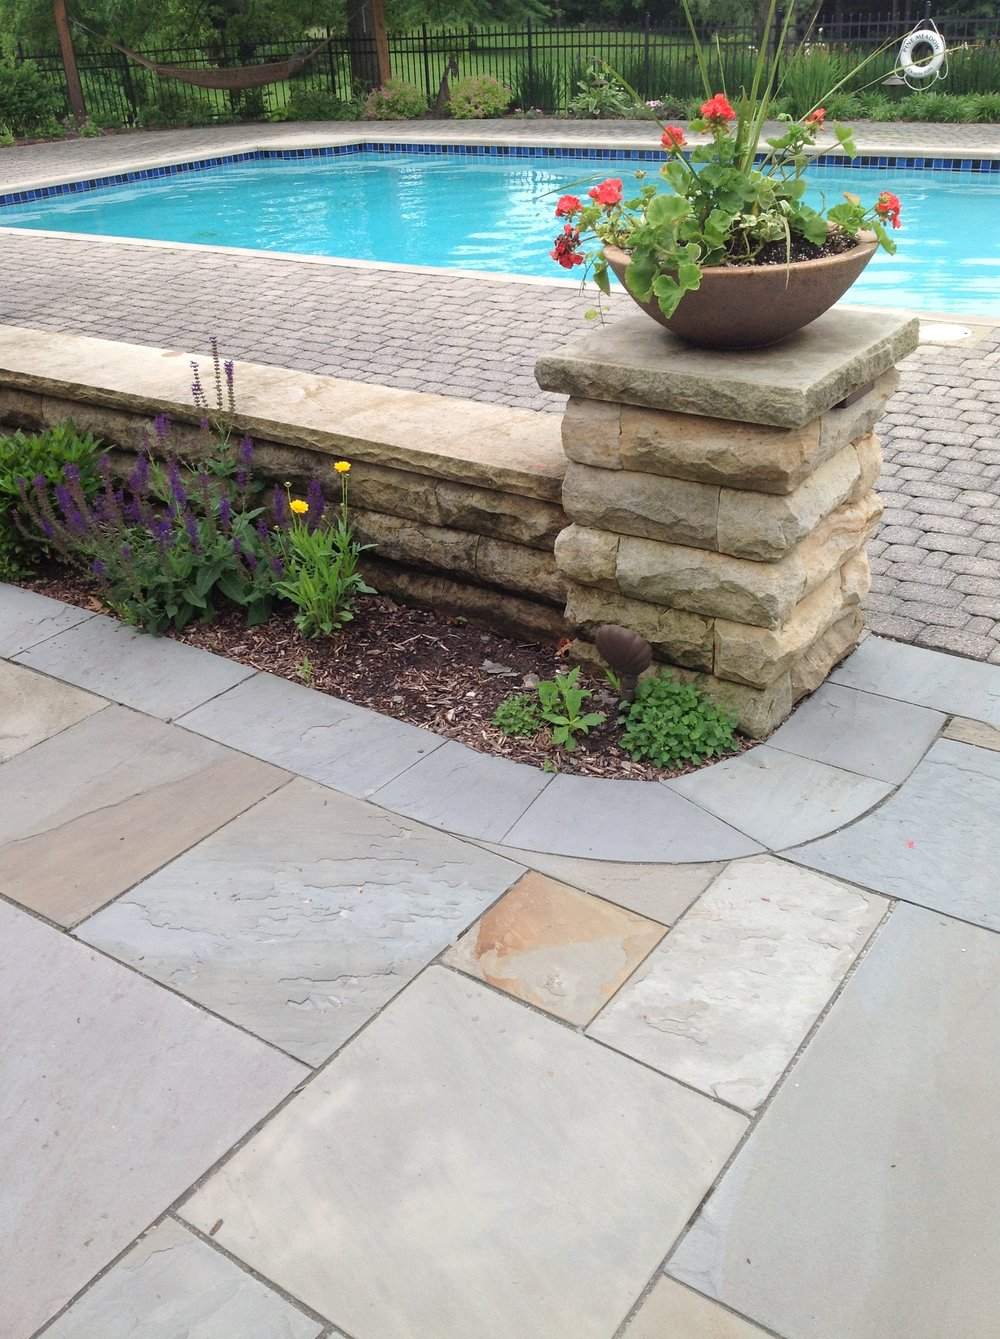 Unilock landscaping companies with top patio pavers and retaining wall in Chagrin Falls, Ohio